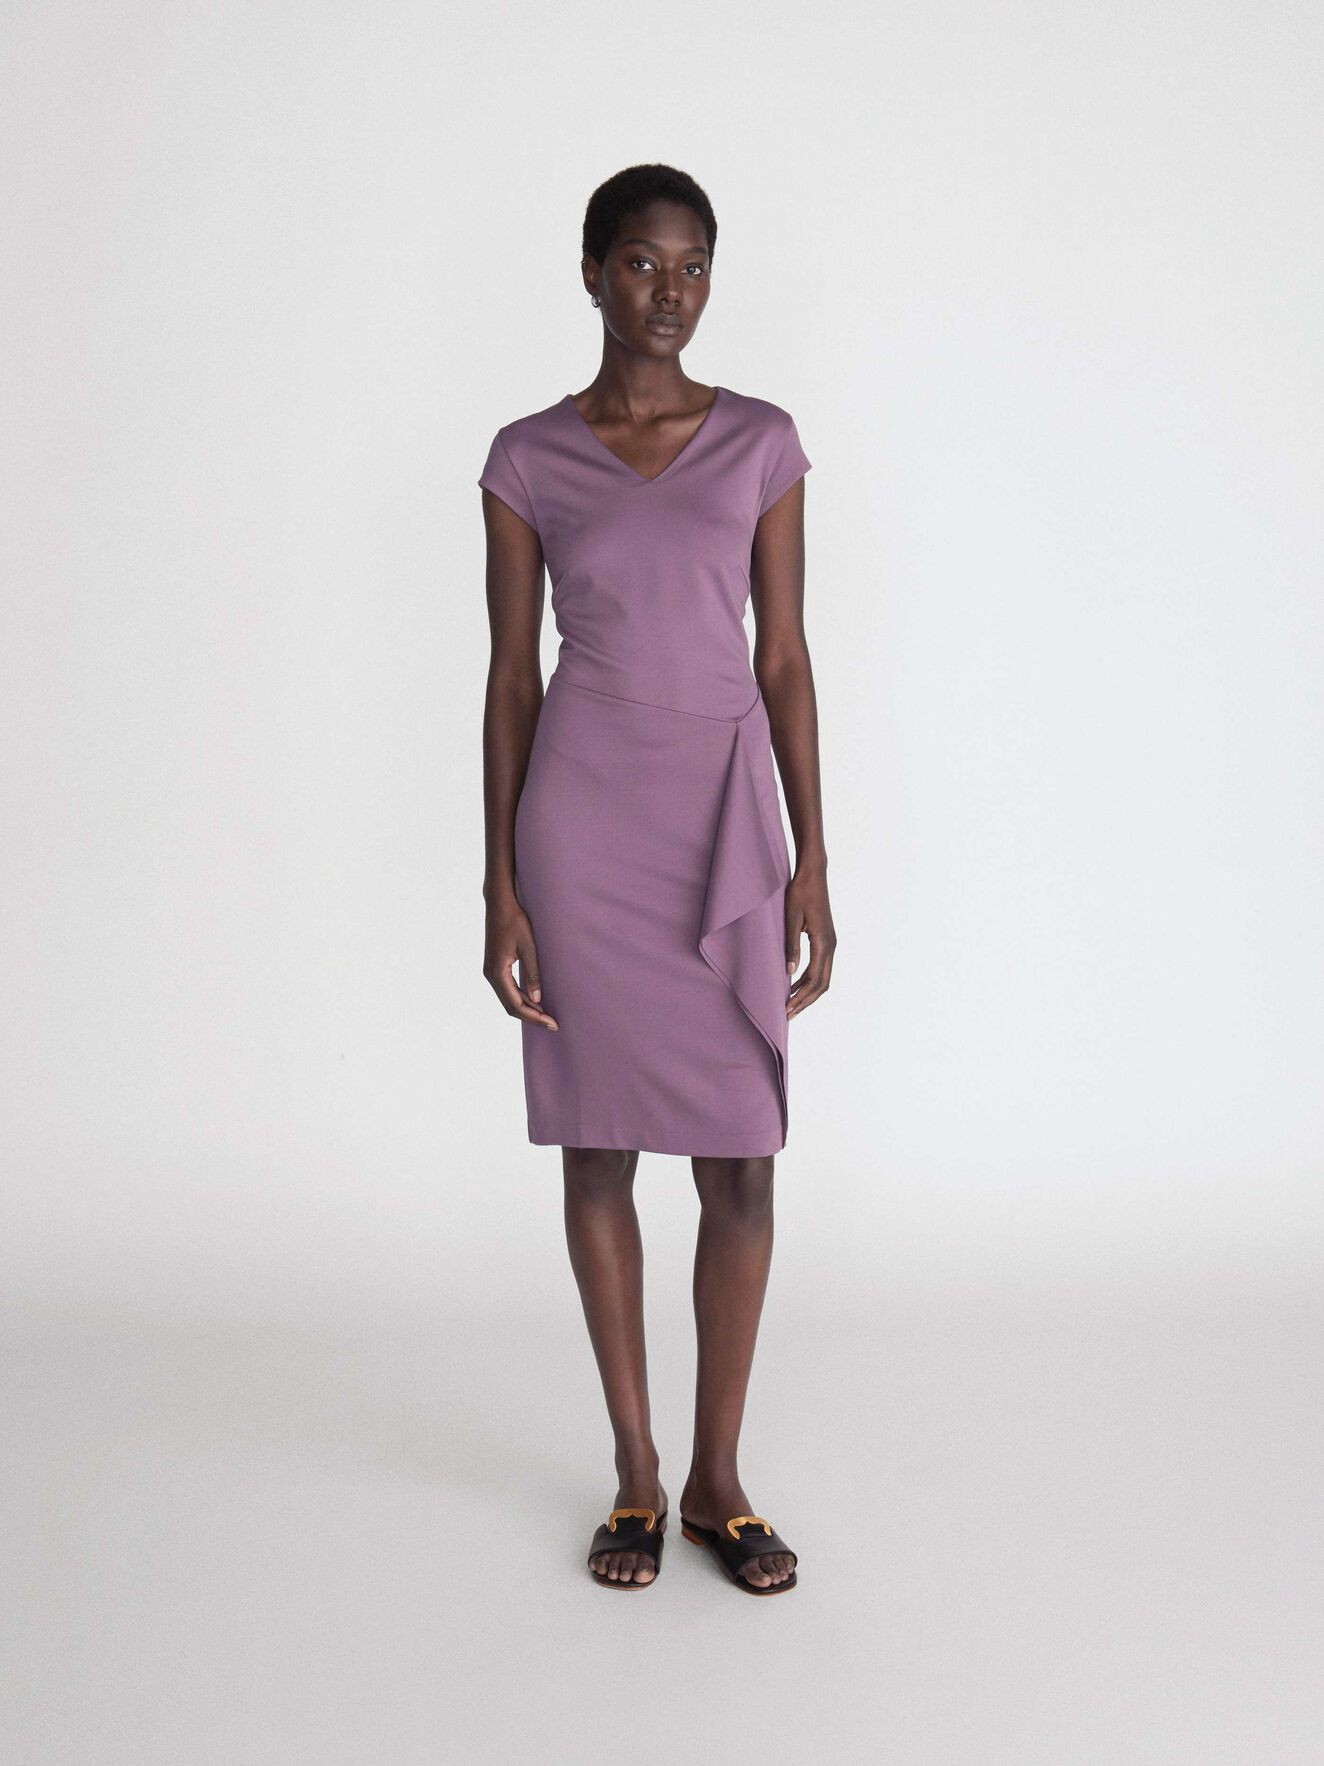 d83a7786dbe Dresses - Shop day and party dresses online at Tiger of Sweden